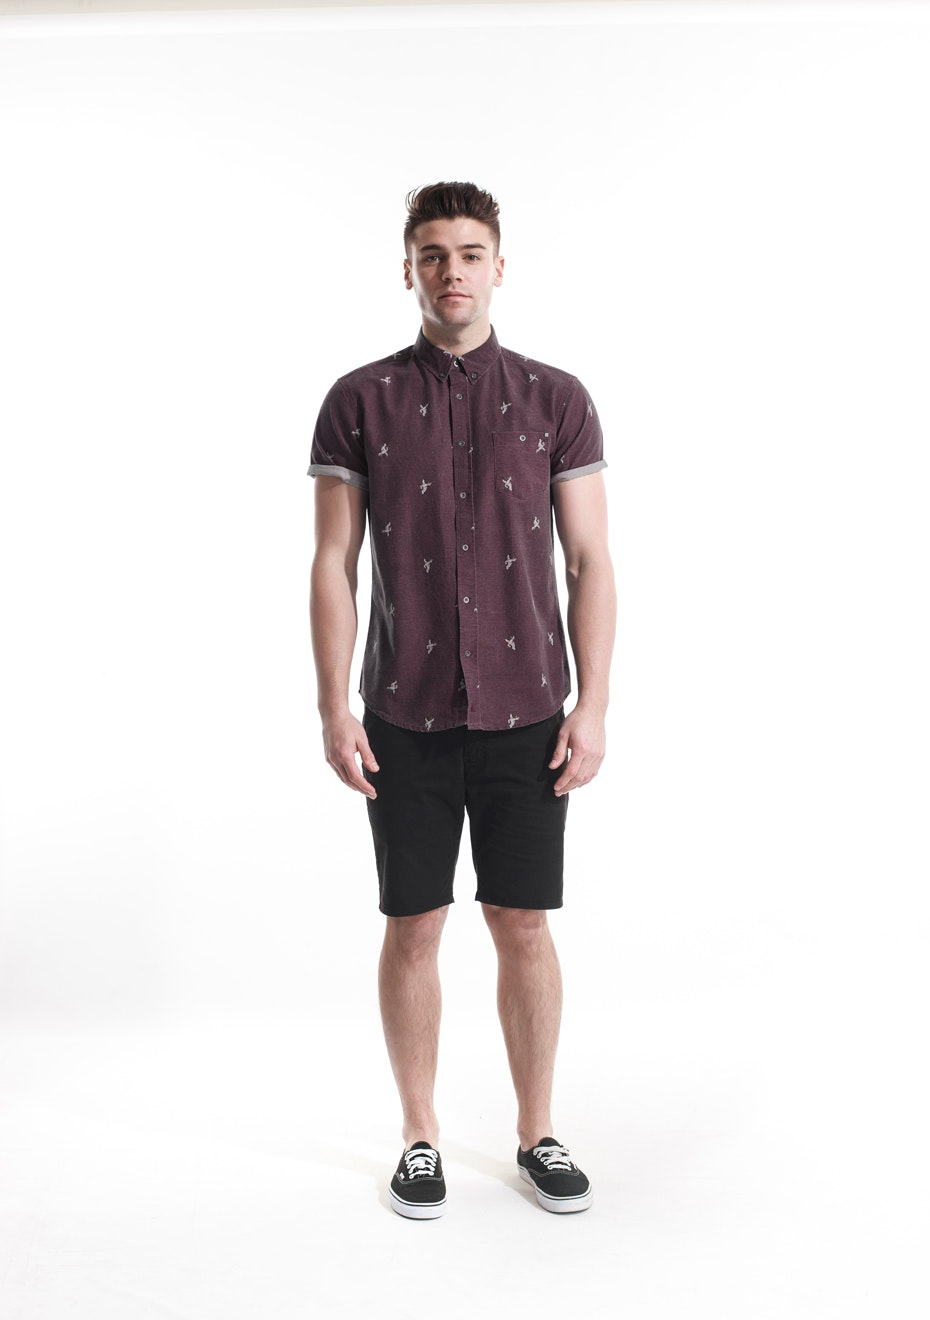 Deacon - Cannes SS Shirt - Burgandy